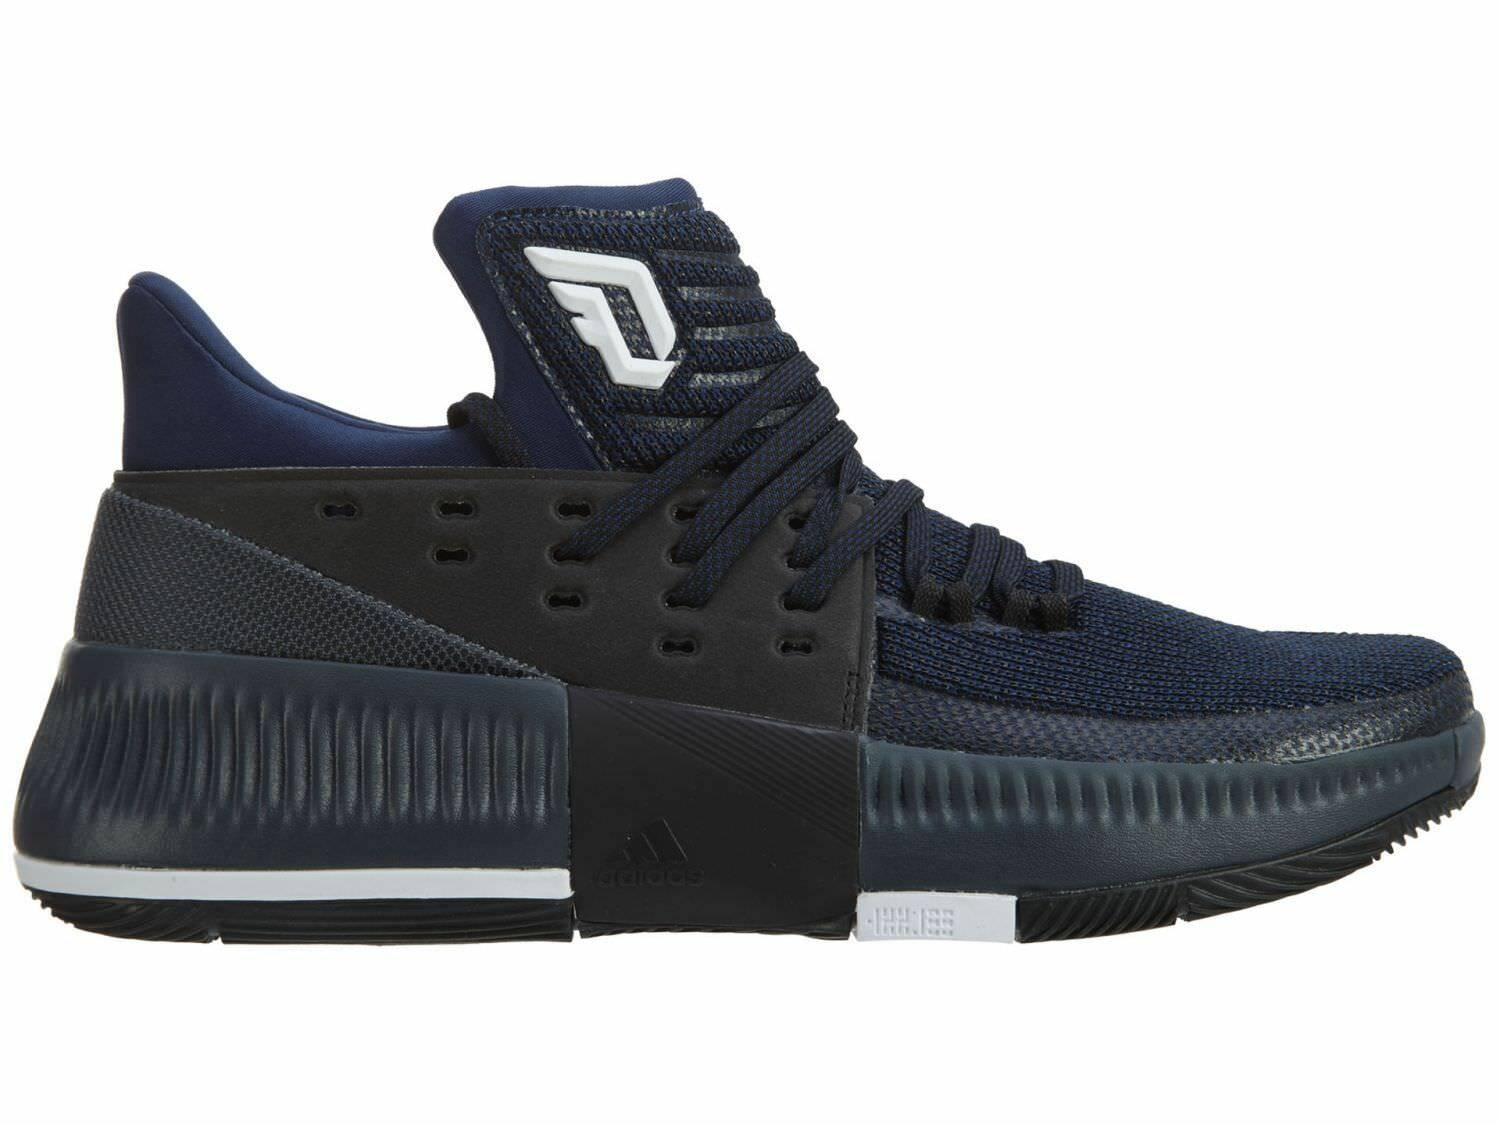 Adidas Dame  3 By Any Means  Dame Uomo BB8271 Dark Blau Lillard Basketball Schuhes Größe 9 4a33cd